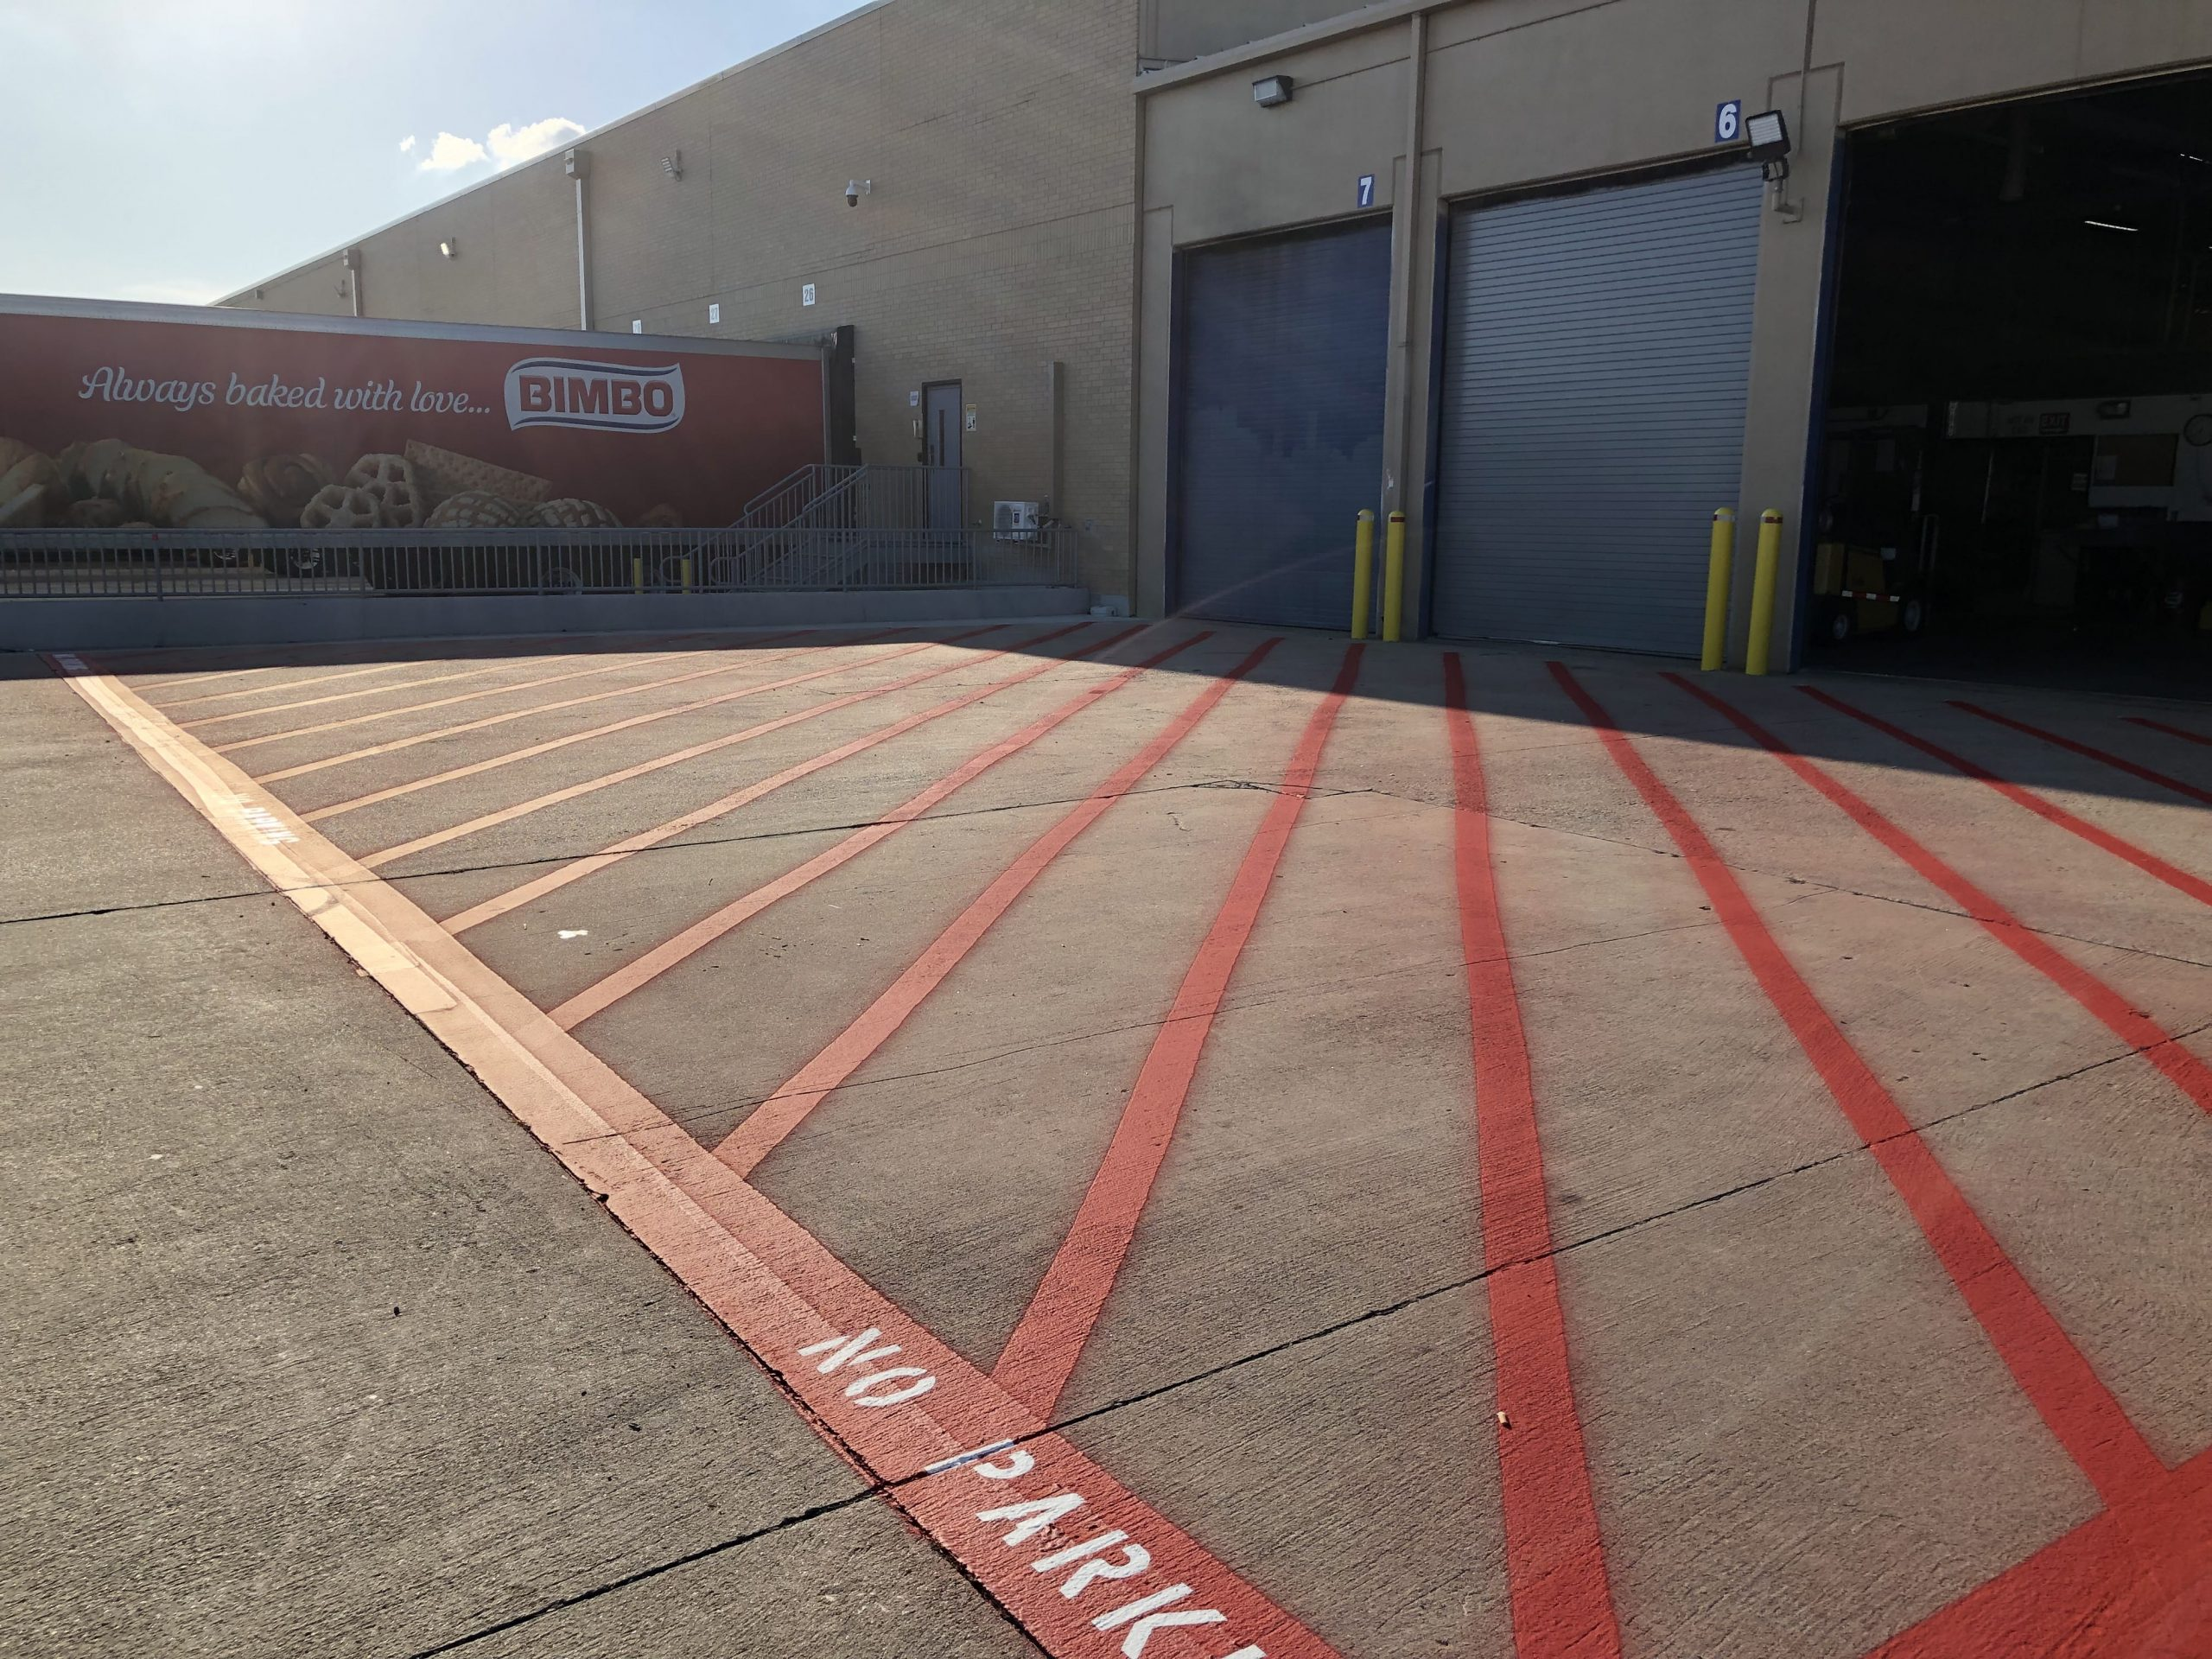 parking lot striping dallas tx commercial best company services near me texas parking lot striping company pictures 3.jpg